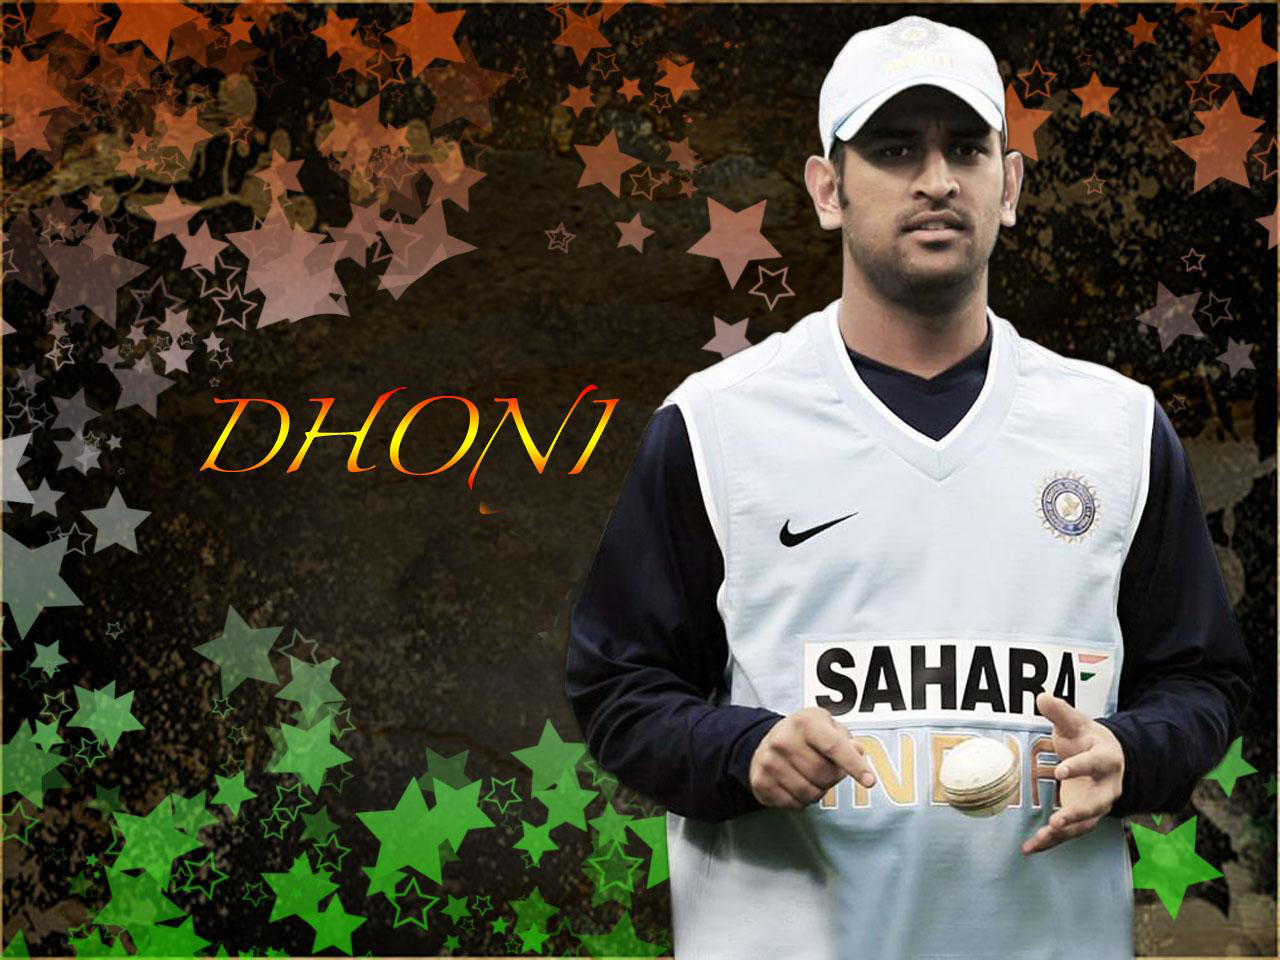 hd mahender singh dhoni fantastic still images free computer download background